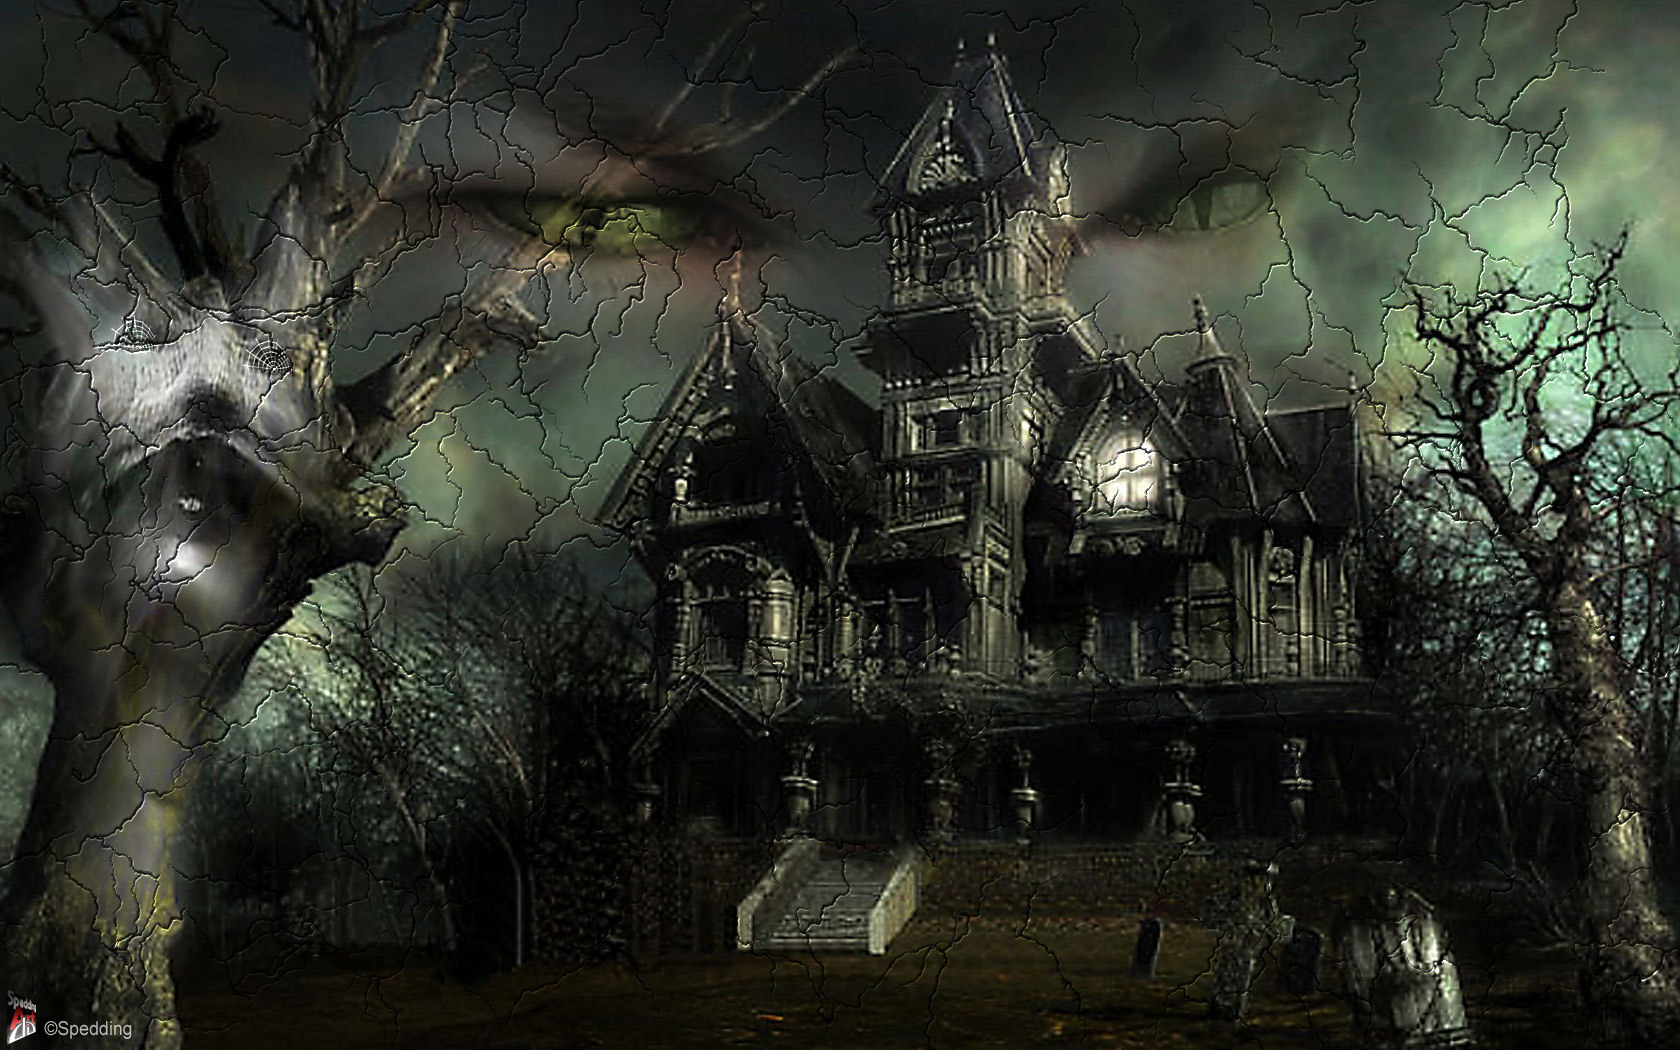 Pin 3d Halloween Wallpaper Fever 1680x1050